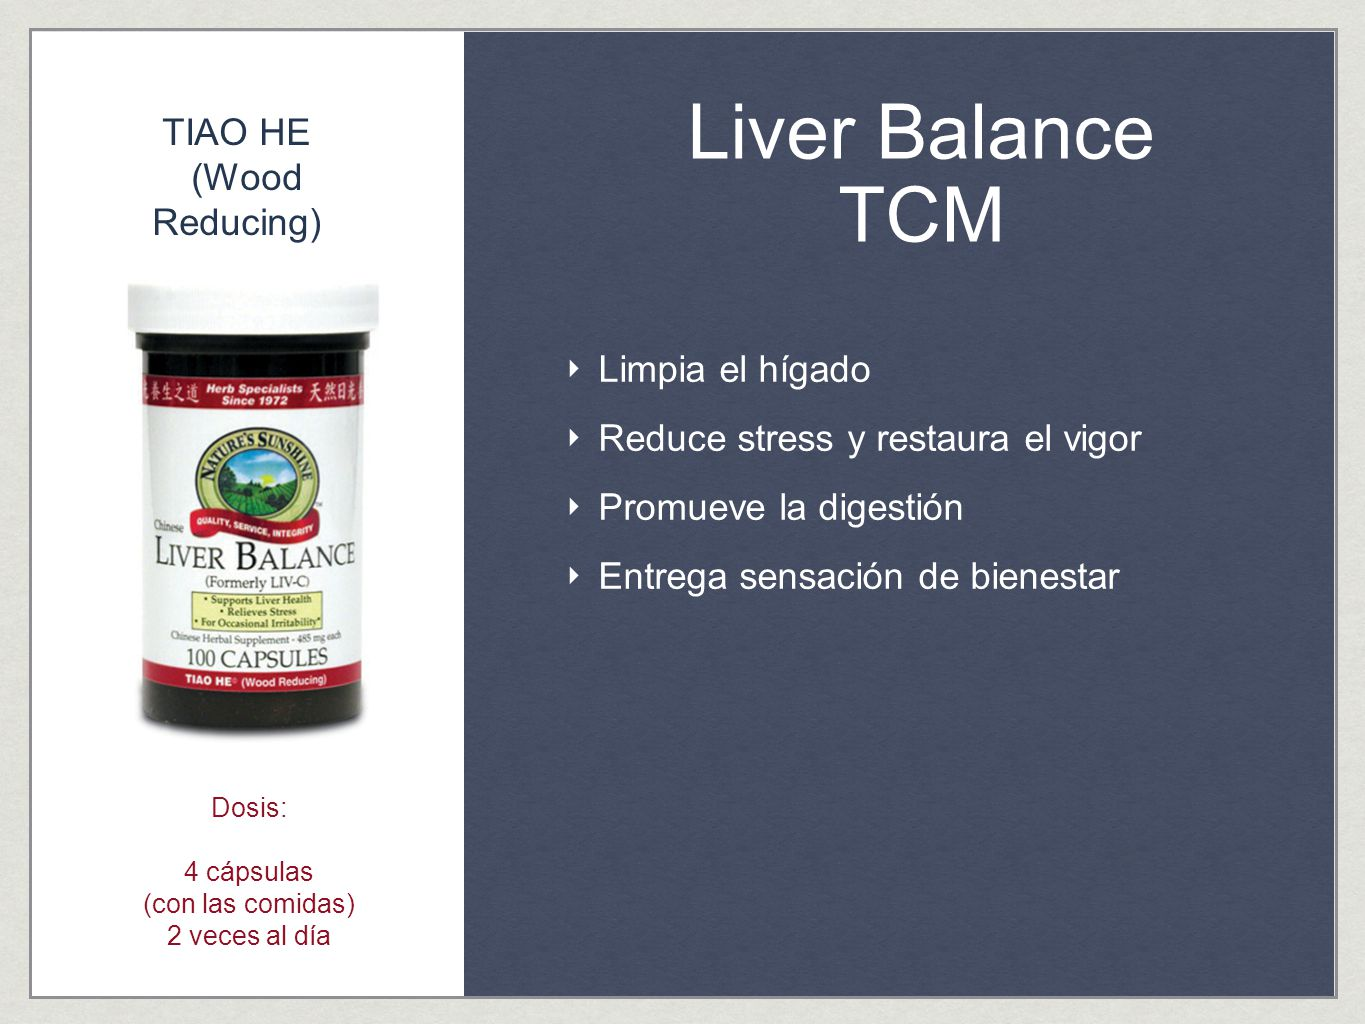 Liver Balance TCM TIAO HE (Wood Reducing) Limpia el hígado